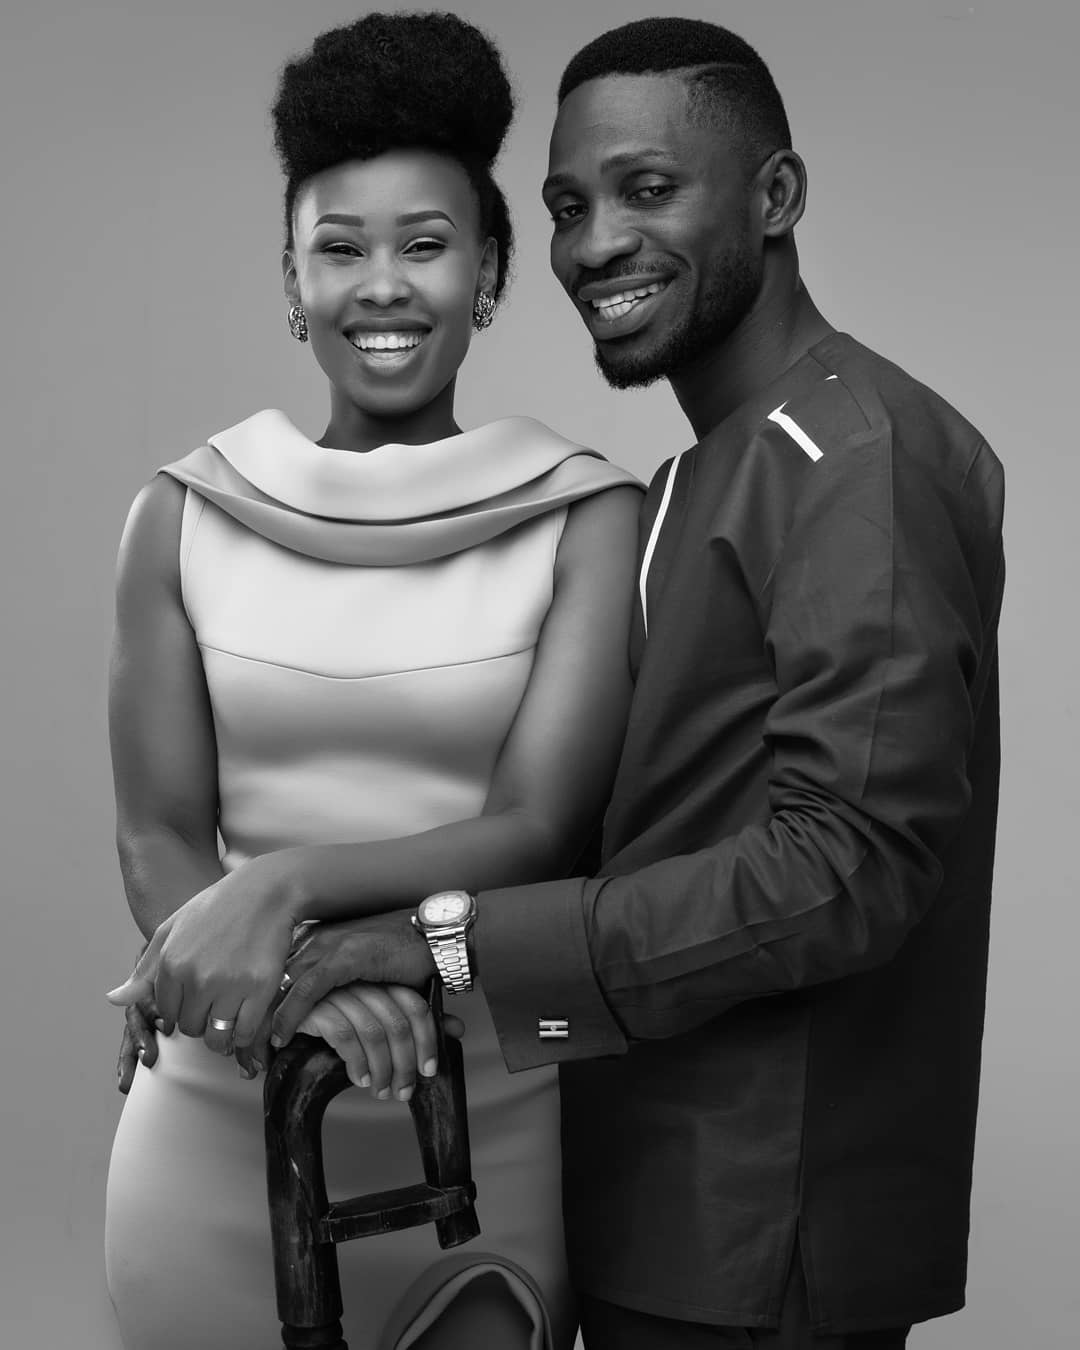 Bobi wine and his wife - Bobi Wine announces his bid for presidential candidacy